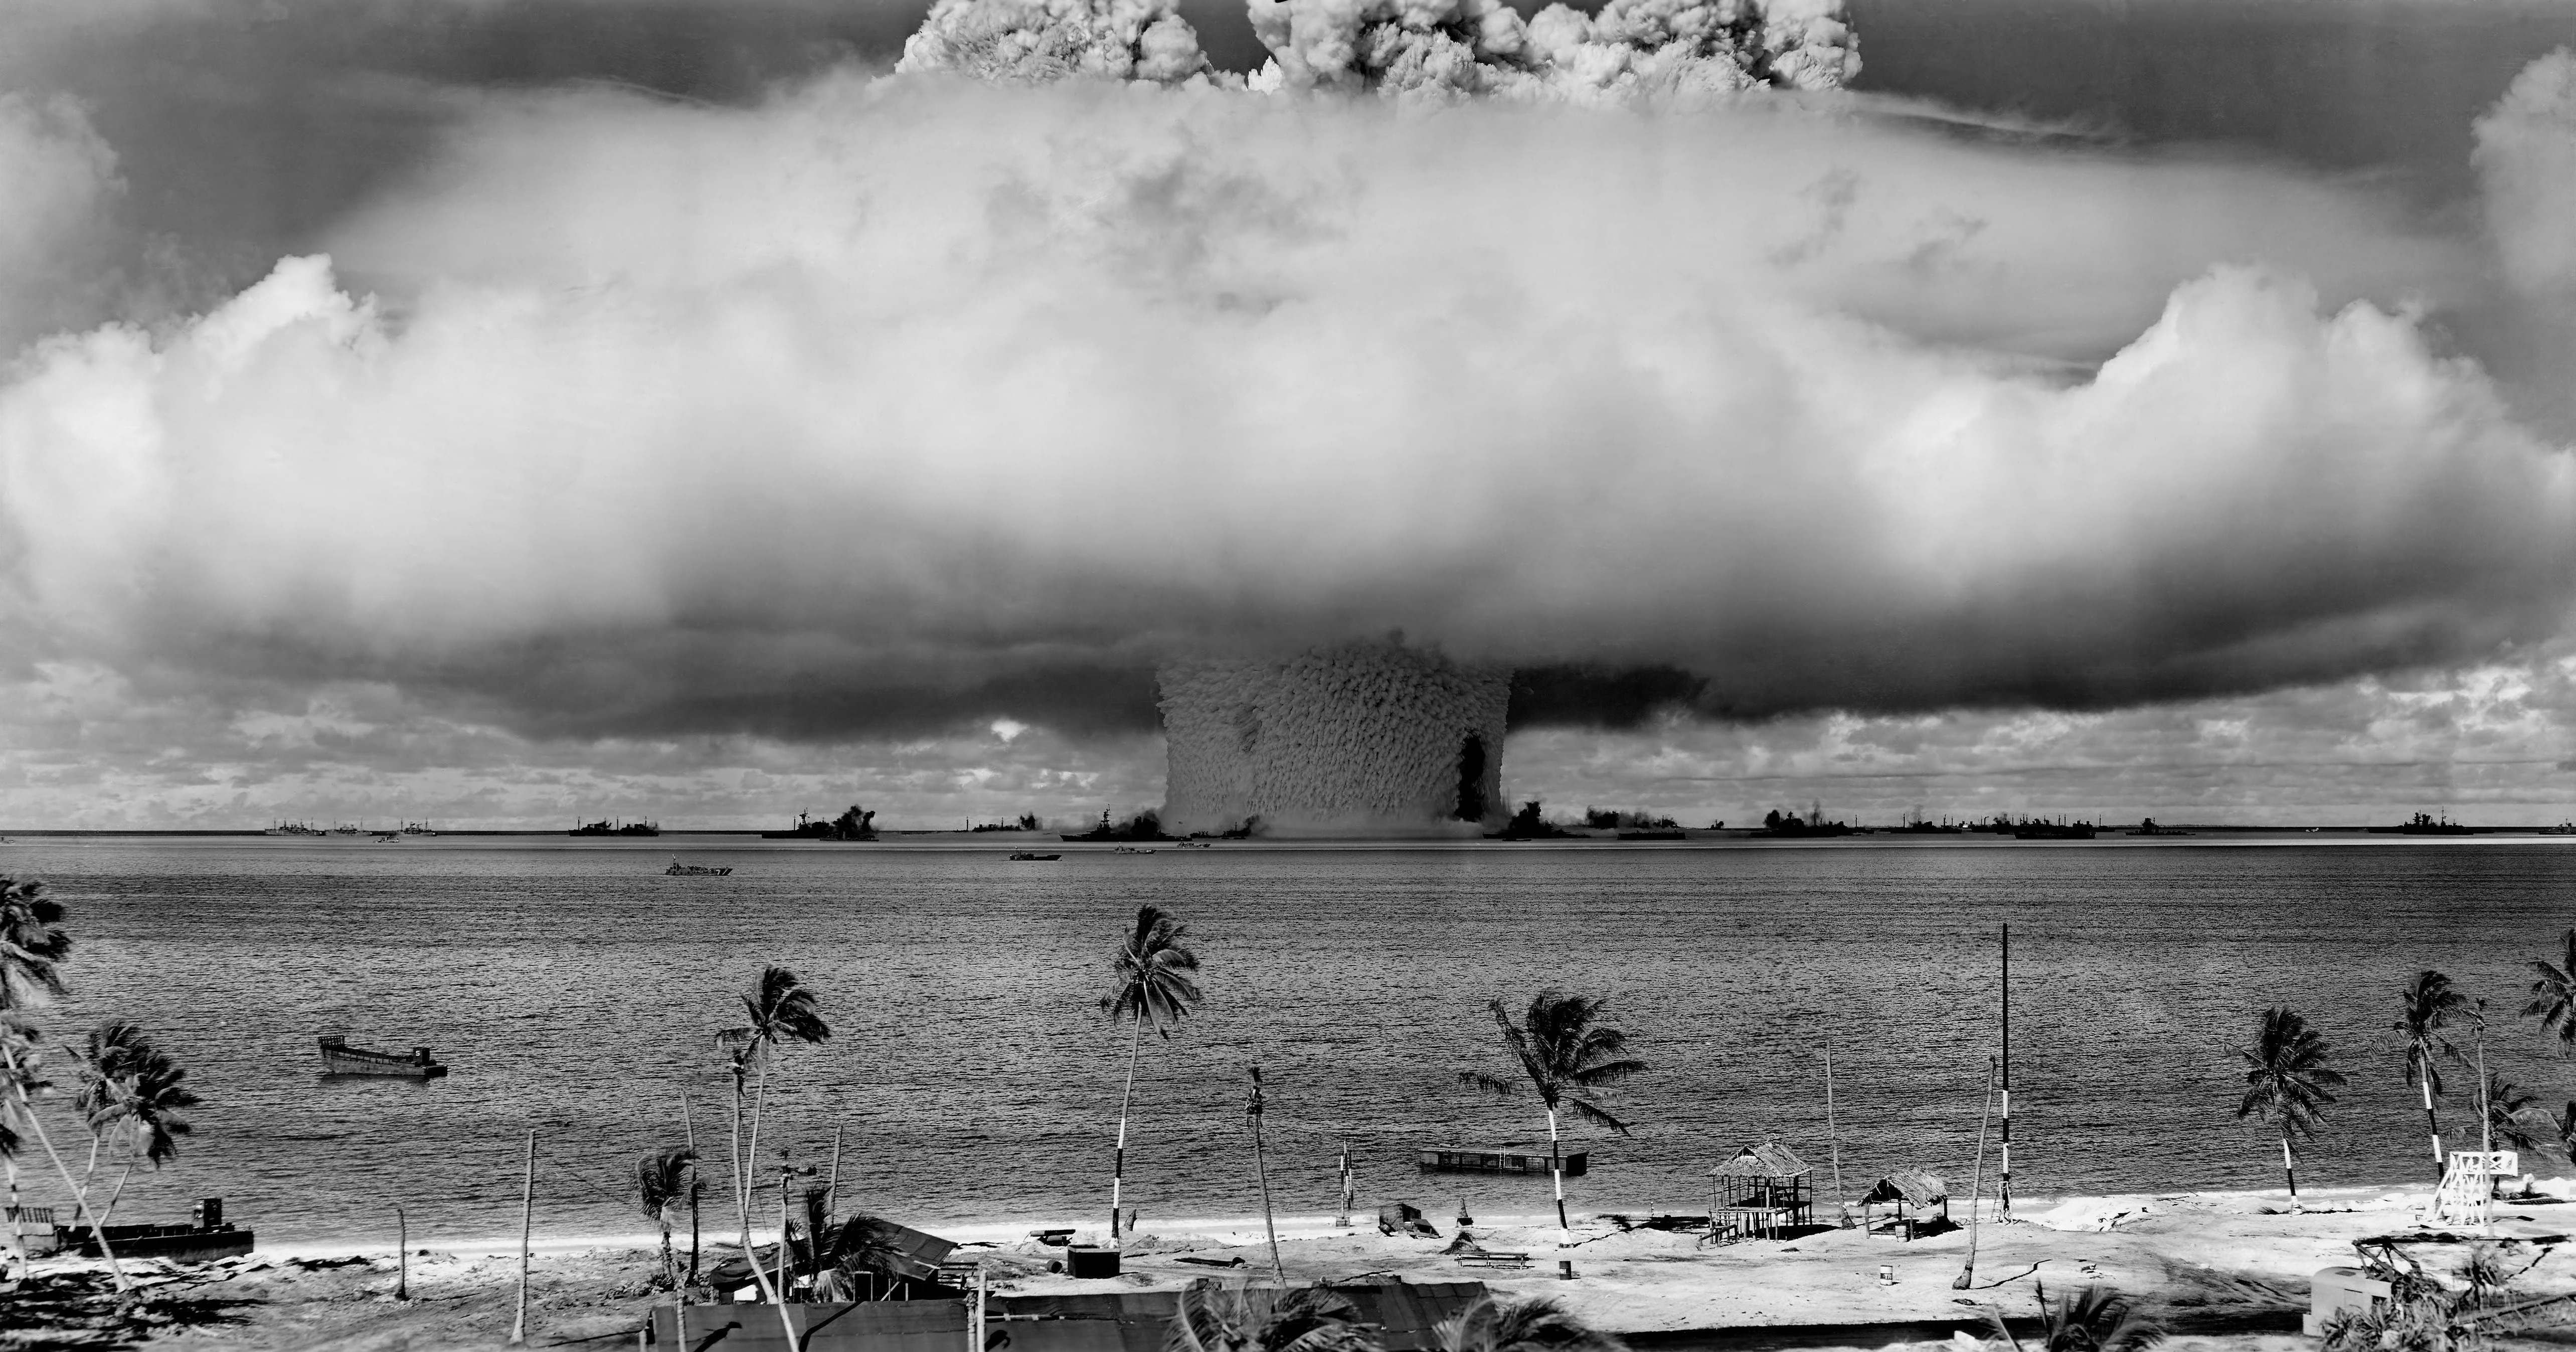 Nuclear bomb in water